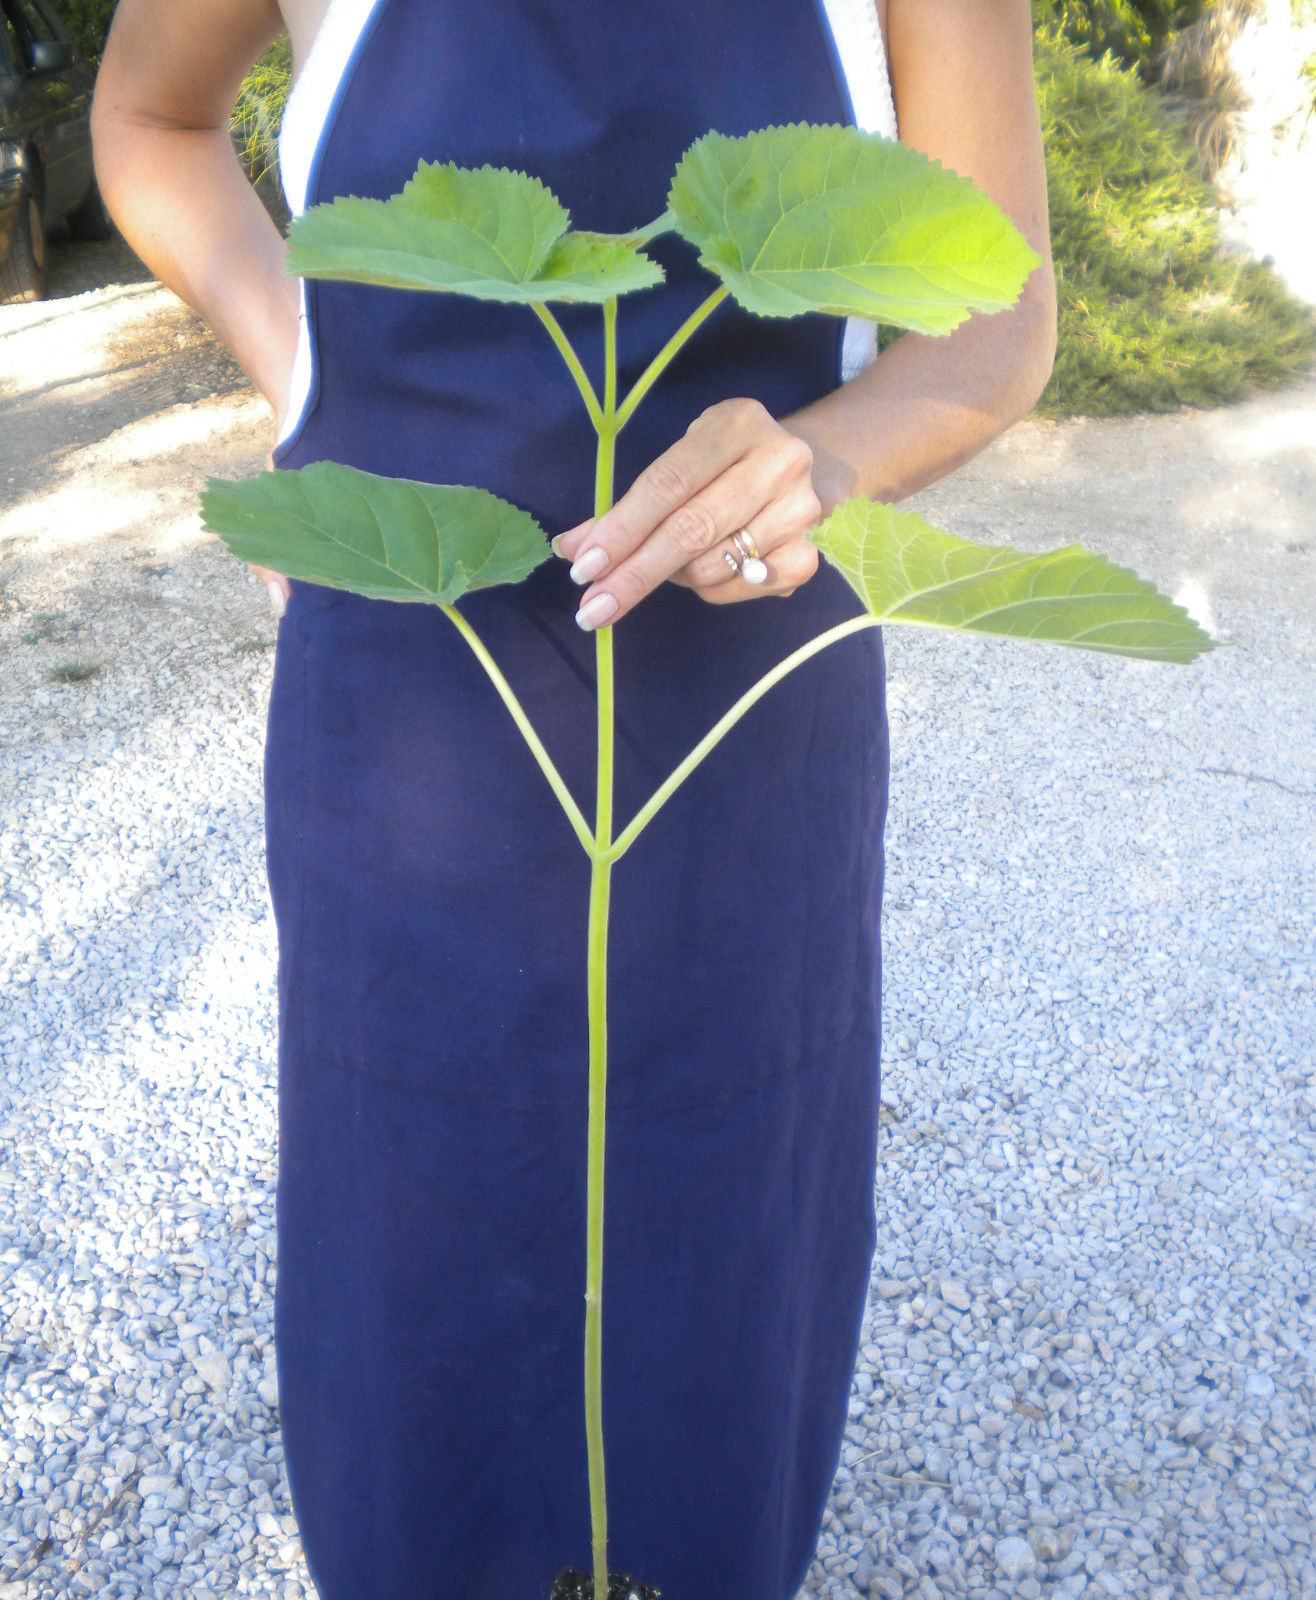 PAULOWNIA TOMENTOSA Paulonia Empress Tree Princess Tree -<b>Vaso 18</b> -altezza 10-20 cm